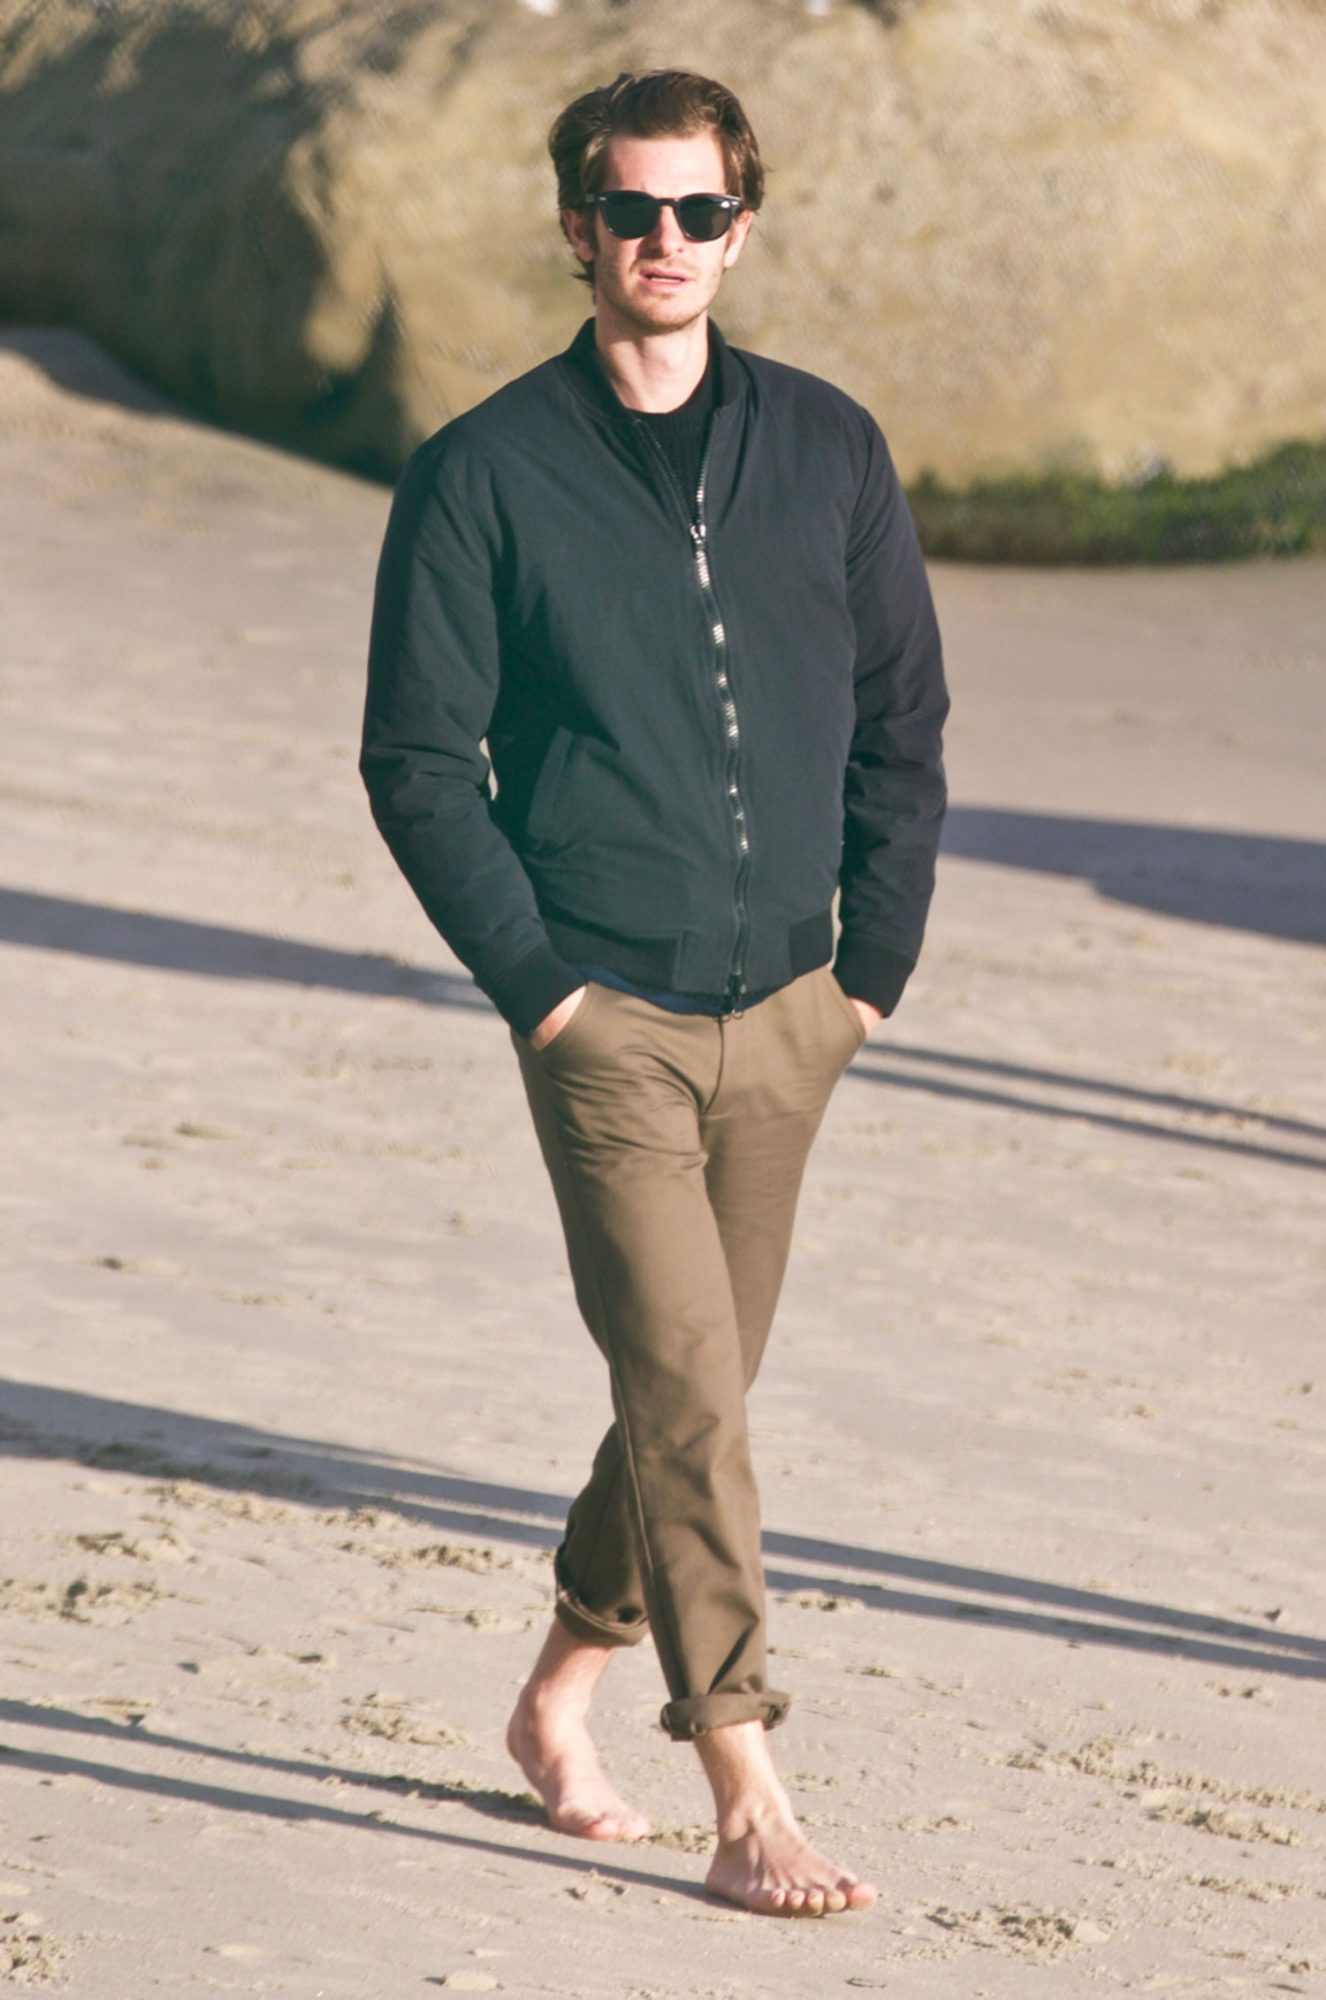 EXCLUSIVE: Andrew Garfield & His Parents see walking on the beach in Malibu